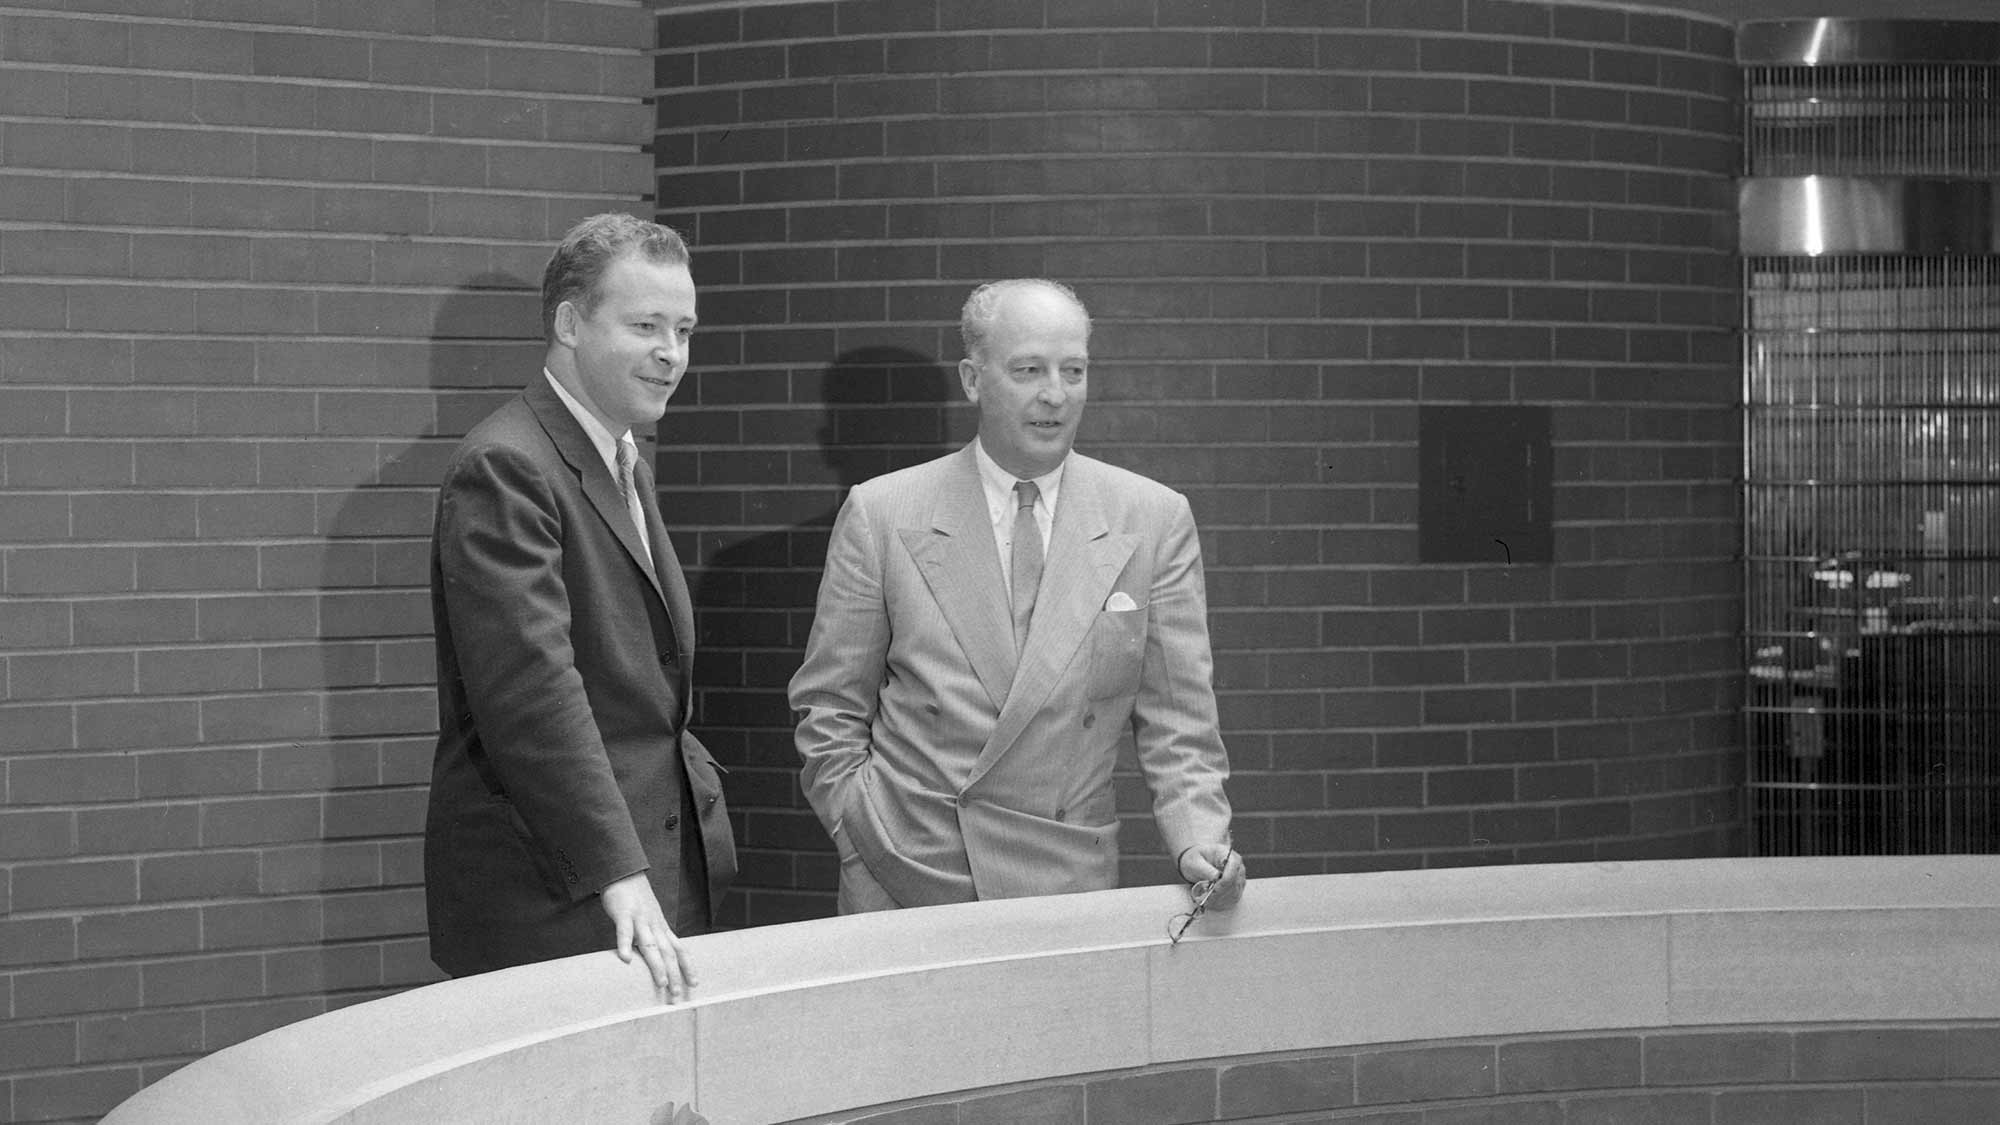 Herbert F Johnson and Sam Johnson in the Frank Lloyd Wright-designed Administration Building